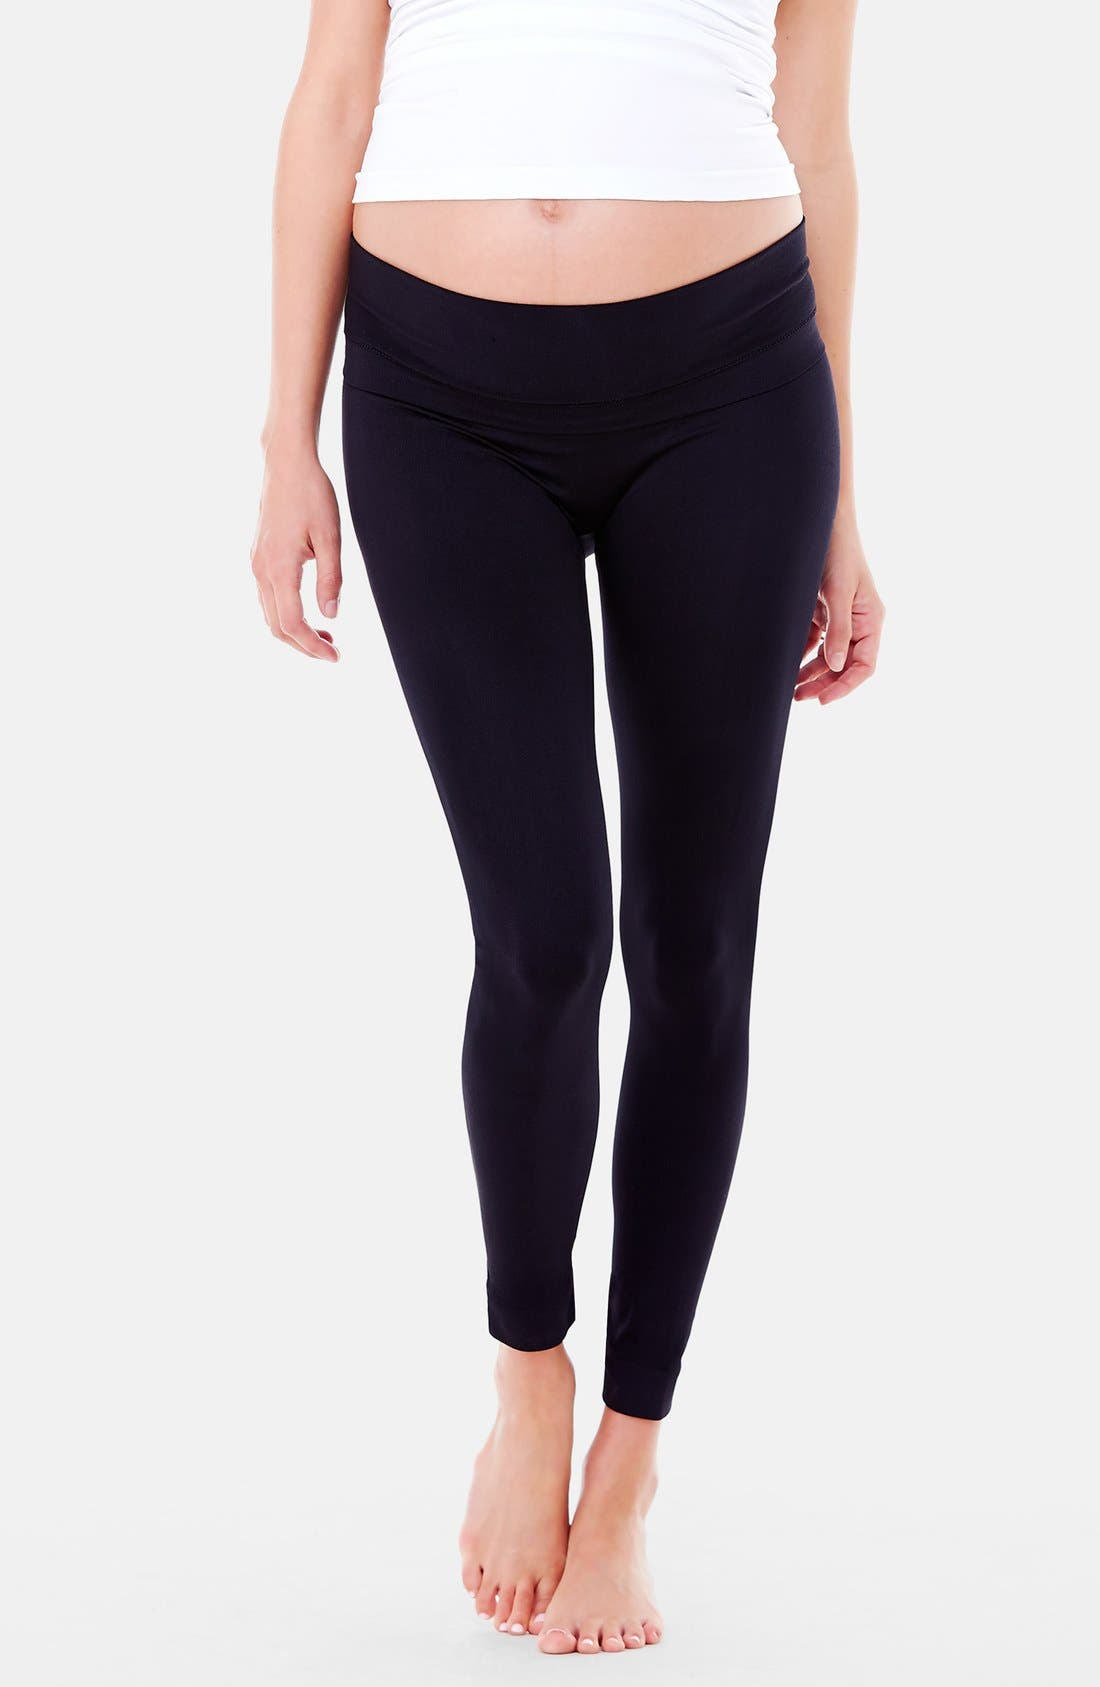 'Everyday' Seamless Maternity Leggings,                         Main,                         color, 001